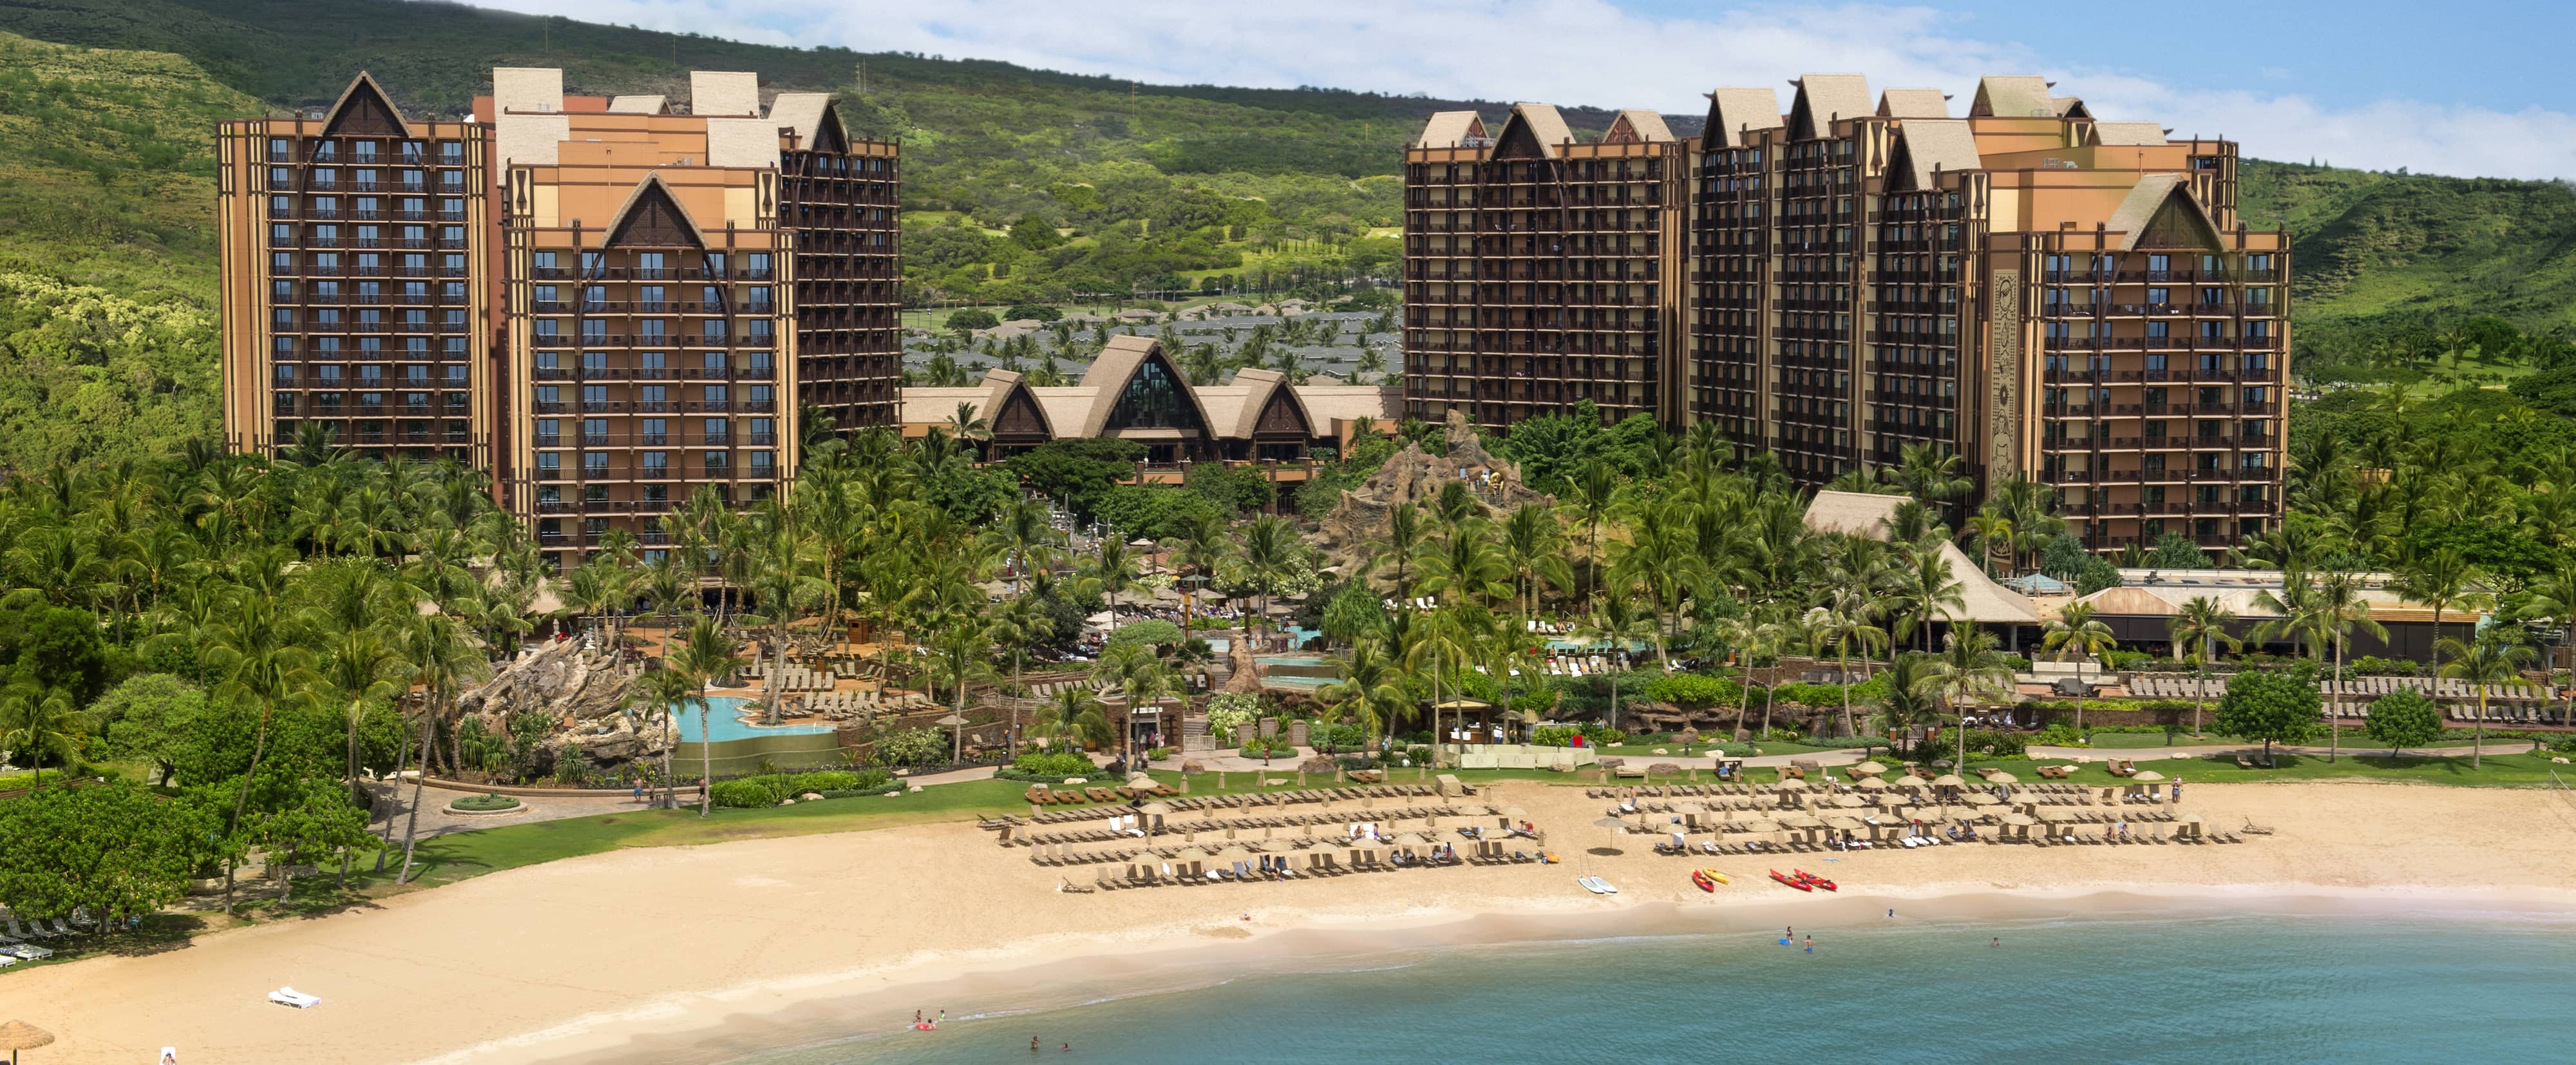 Aulani, A Disney Resort & Spa, located on Ko Olina Beach in O'ahu